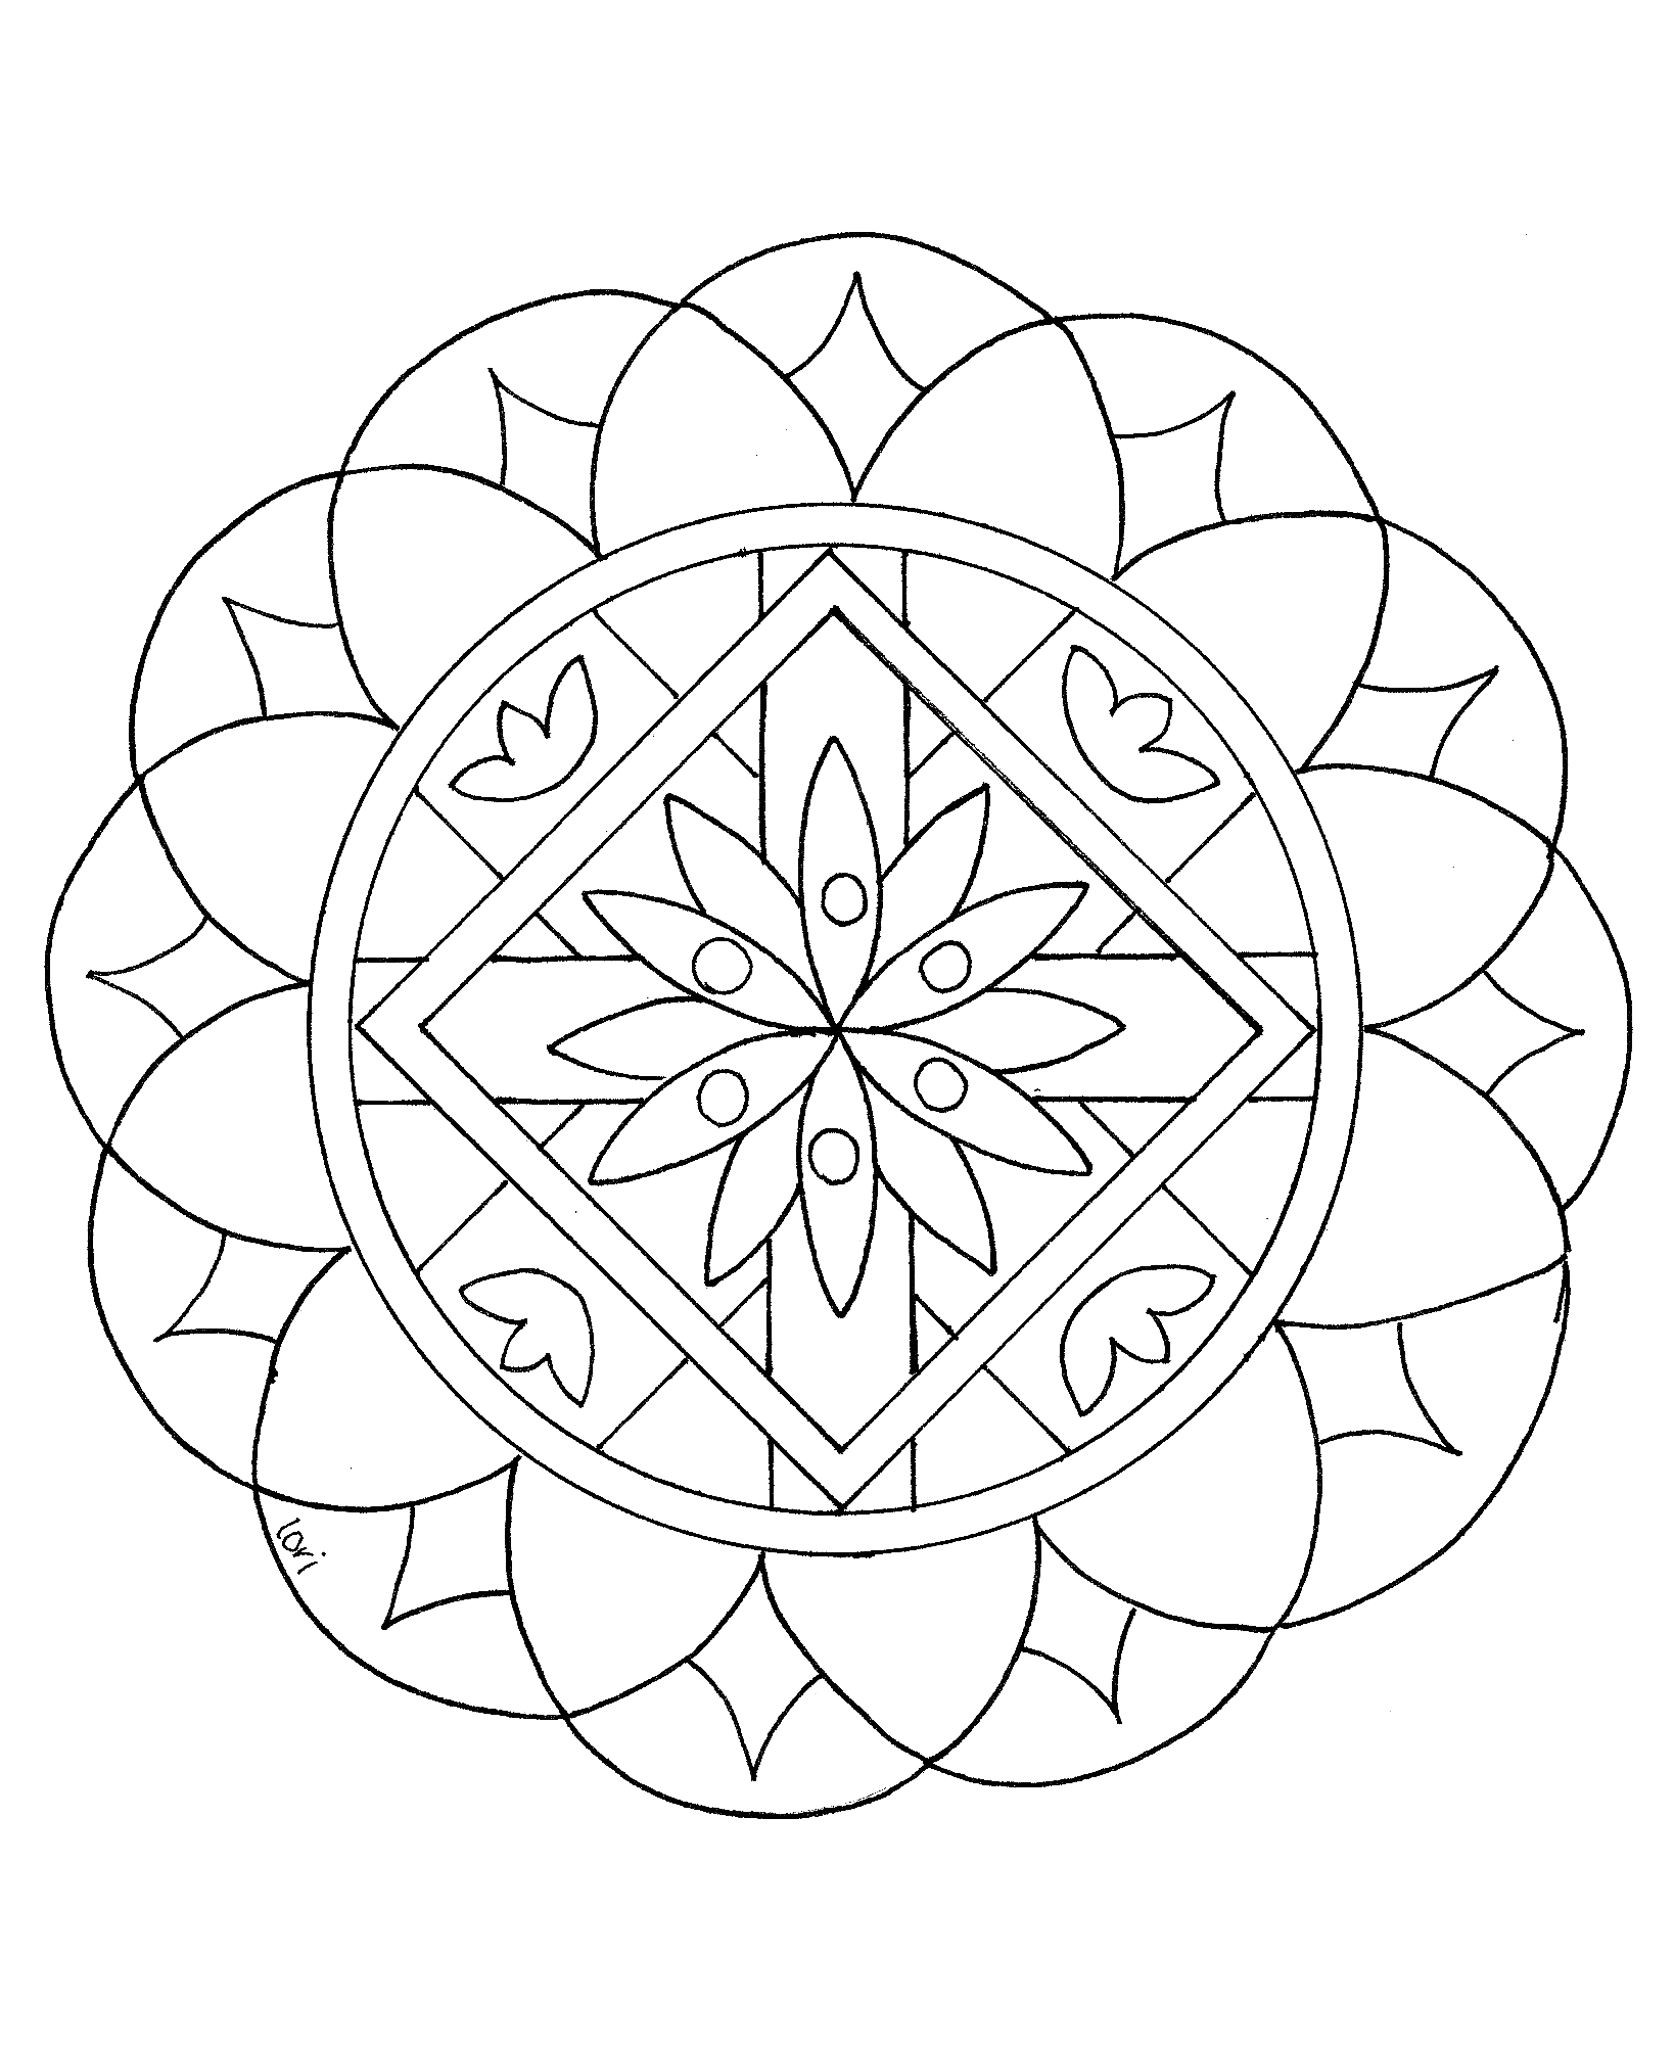 Best ideas about Stress Free Coloring Sheets For Kids . Save or Pin Mandala to color easy children 16 Easy Mandalas for kids Now.